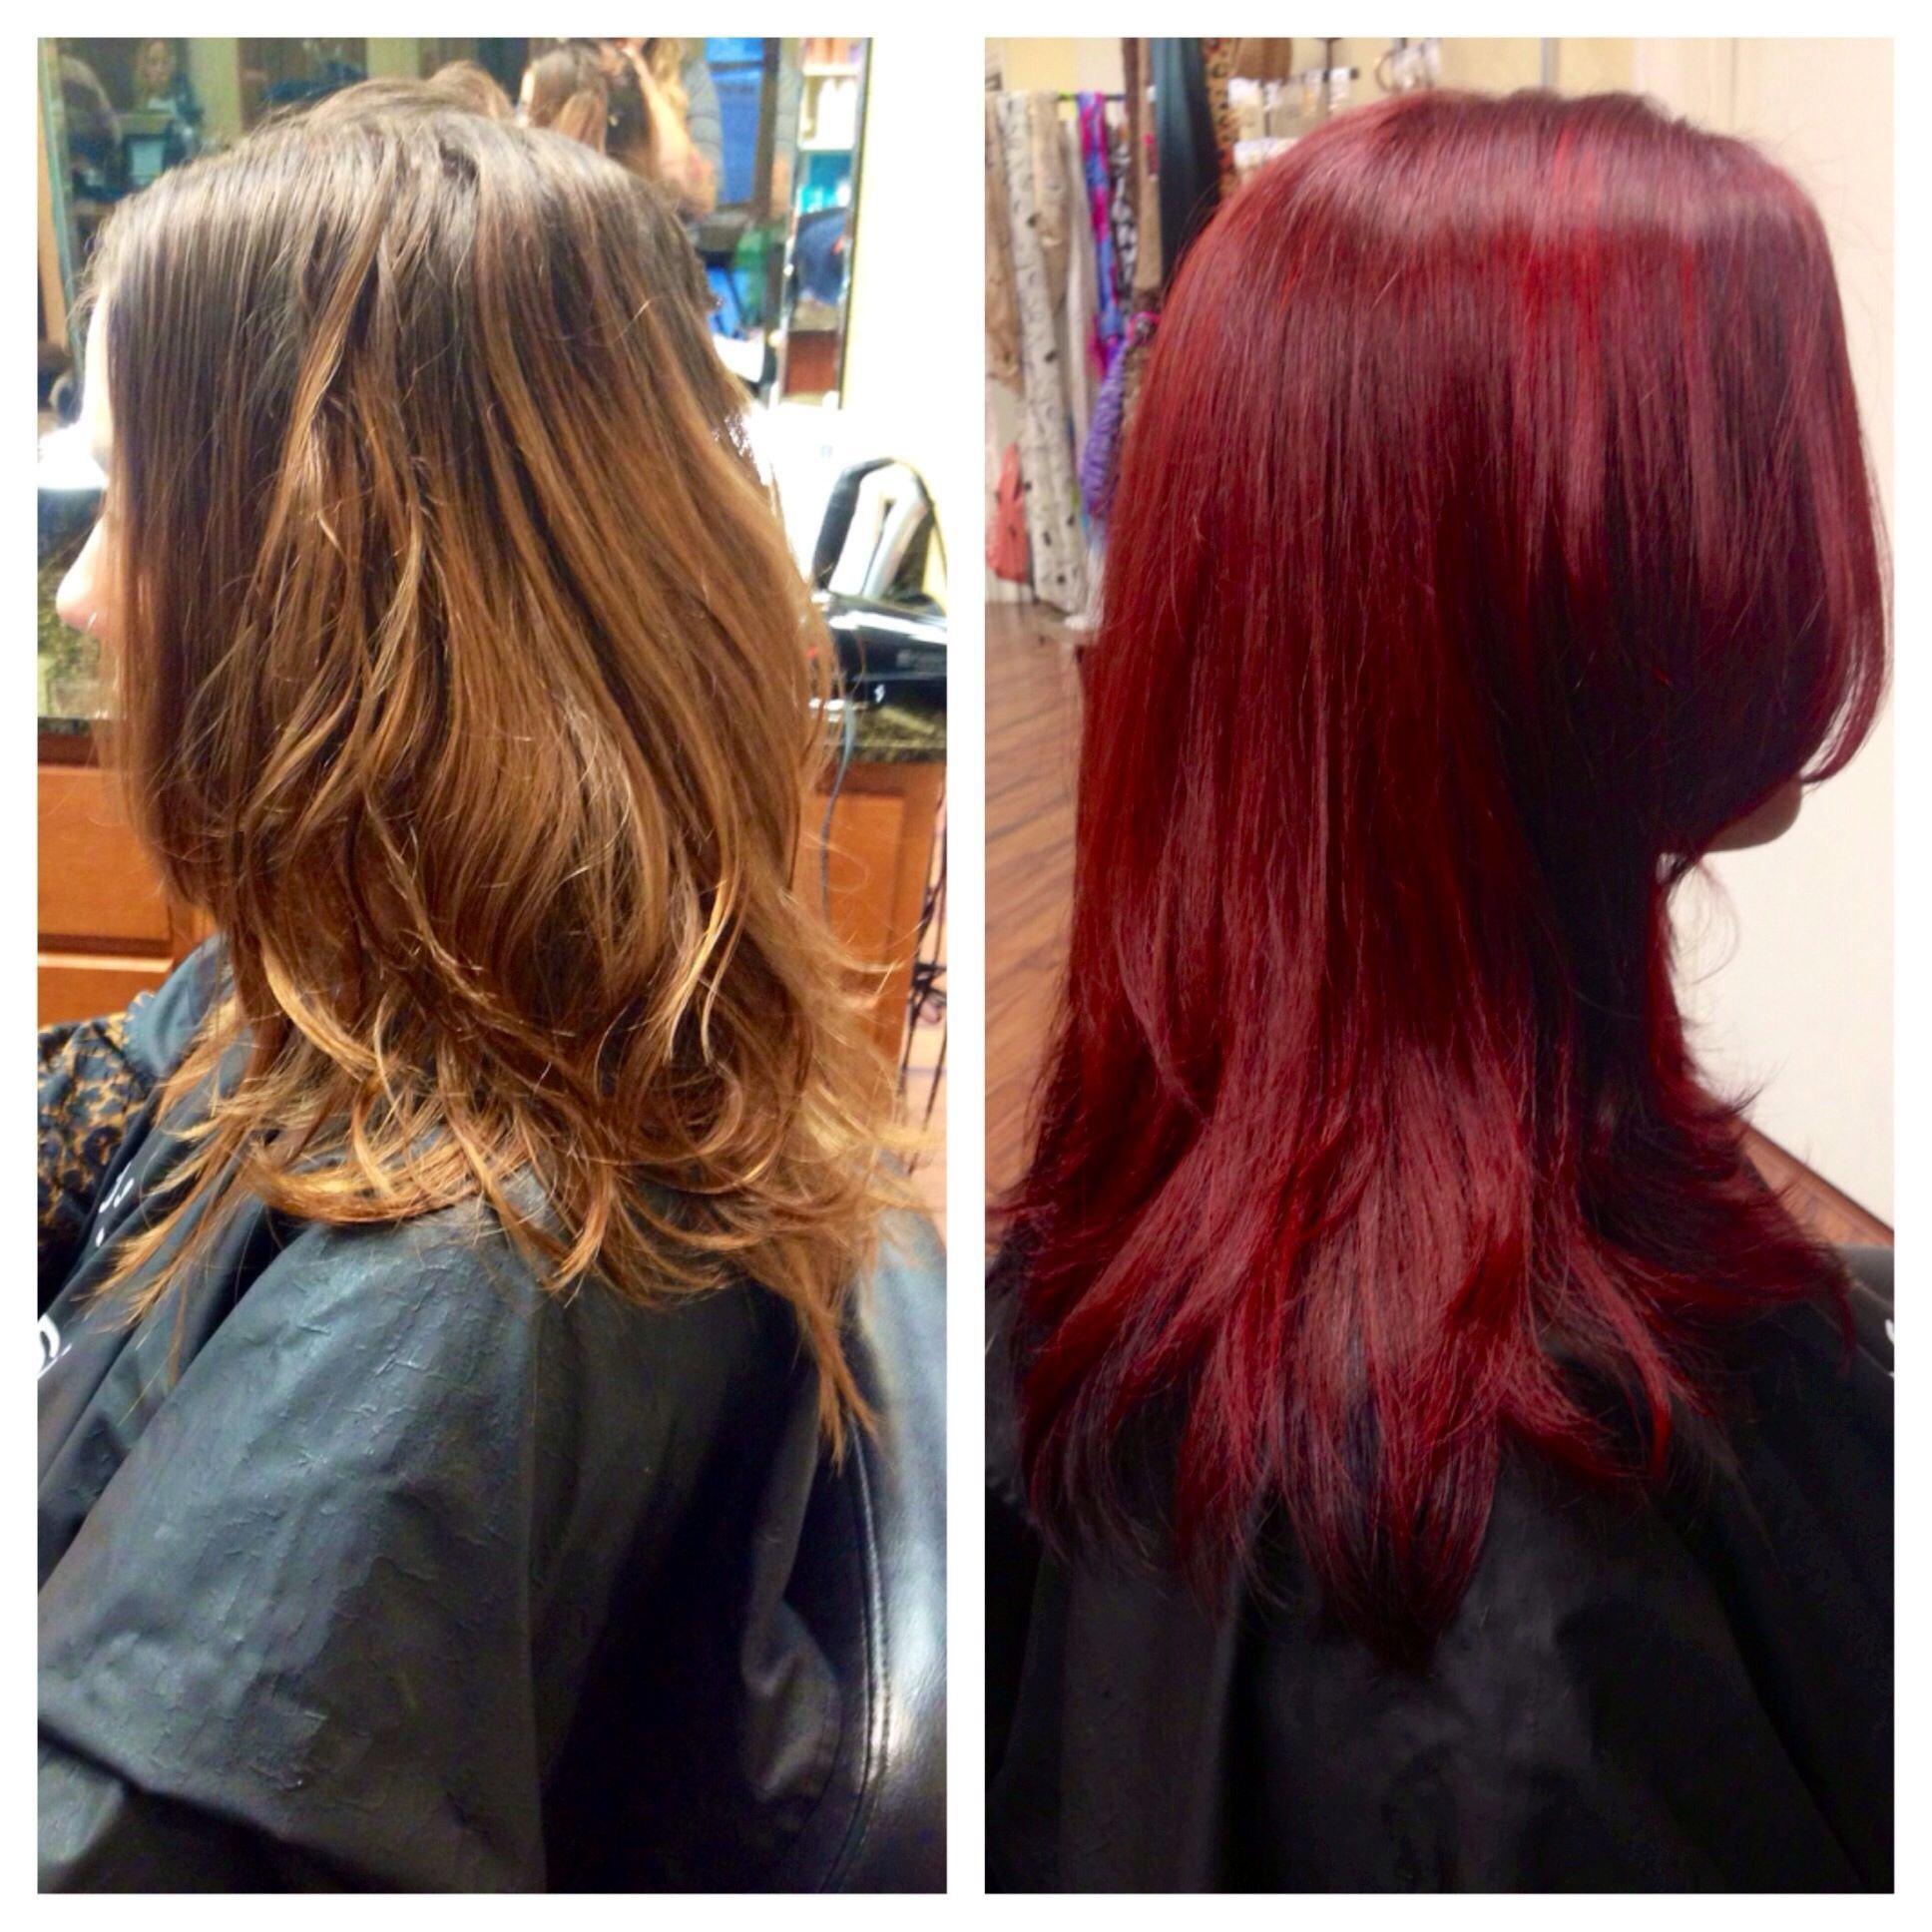 New Color Correction Before And After Brassy Box Color To Ideas With Pictures